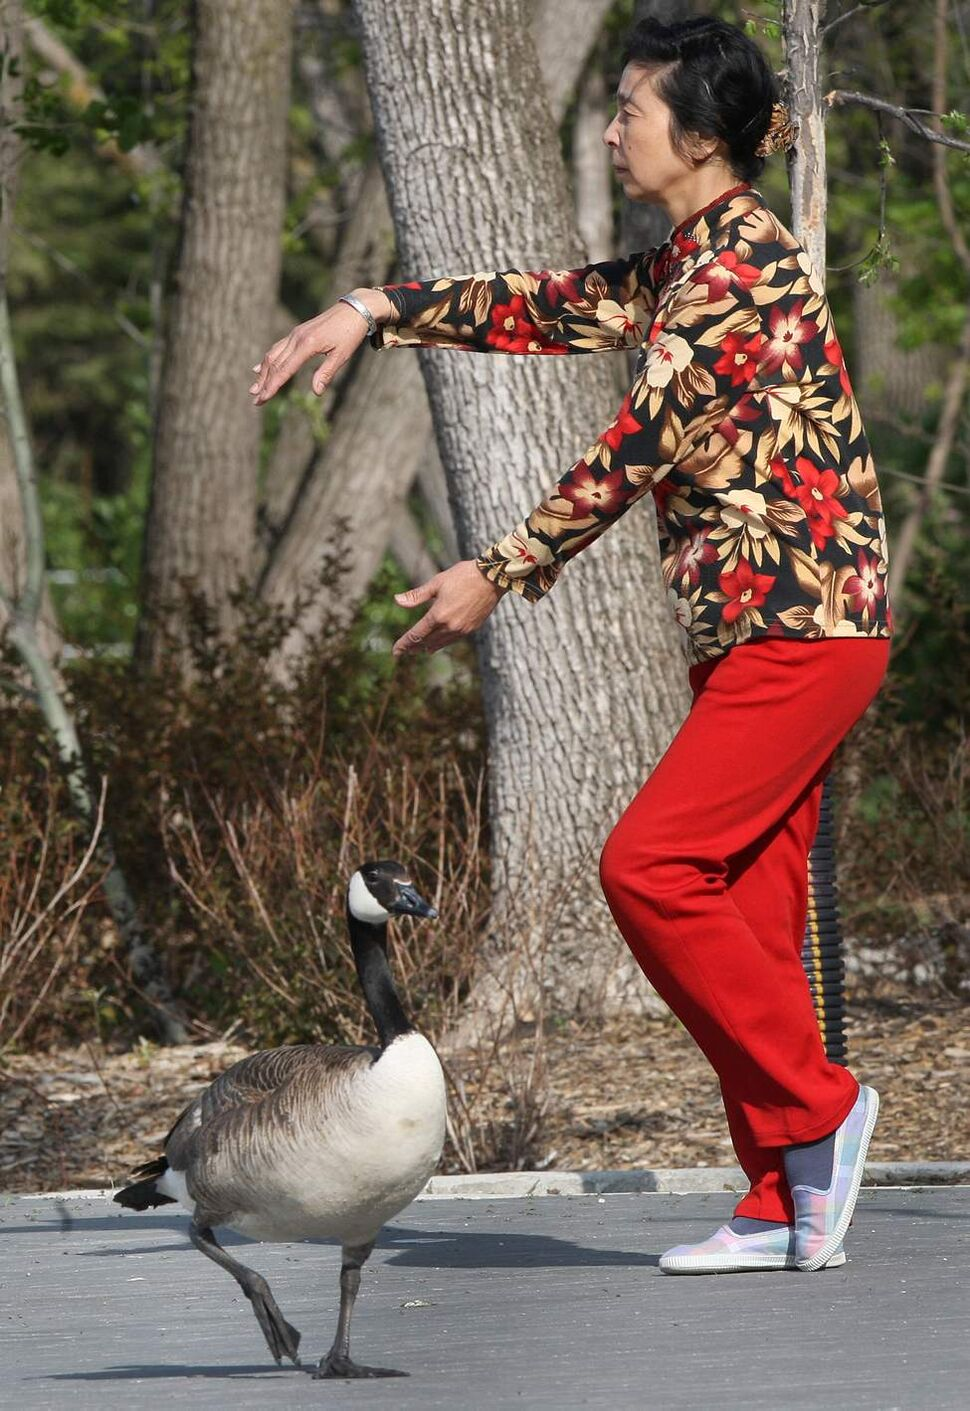 DAY THIRTEEN - Jia Ping Lu practices tai chi at the Assiniboine Park duck pond Thursday morning under the watchful eye of a Canada goose.  May 17, 2012   (JOE BRYKSA / WINNIPEG FREE PRESS)